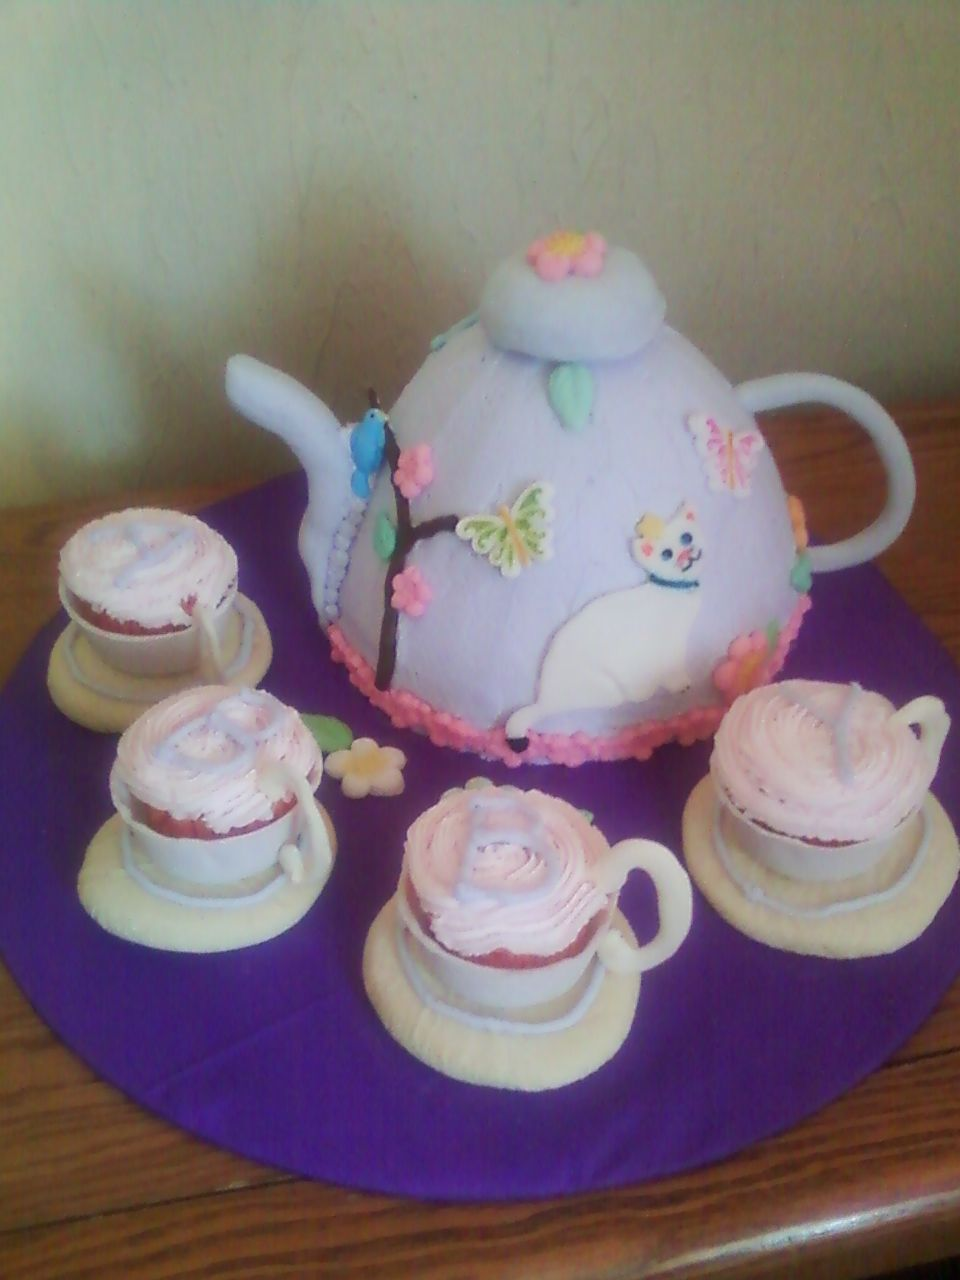 Teapot with cupcake teacups - This teapot cake was for a little girls 4th birthday. She wanted something with a kitty and her mom was doing a tea party for her birthday so this made both of them happy! Teapot was chocolate cake and tea cups were strawberry cupcakes in fondant cups, teapot frosted n BC, handle and spout were fondant/gumpaste mix. Decorations are fondant and saucers are sugar cookies.